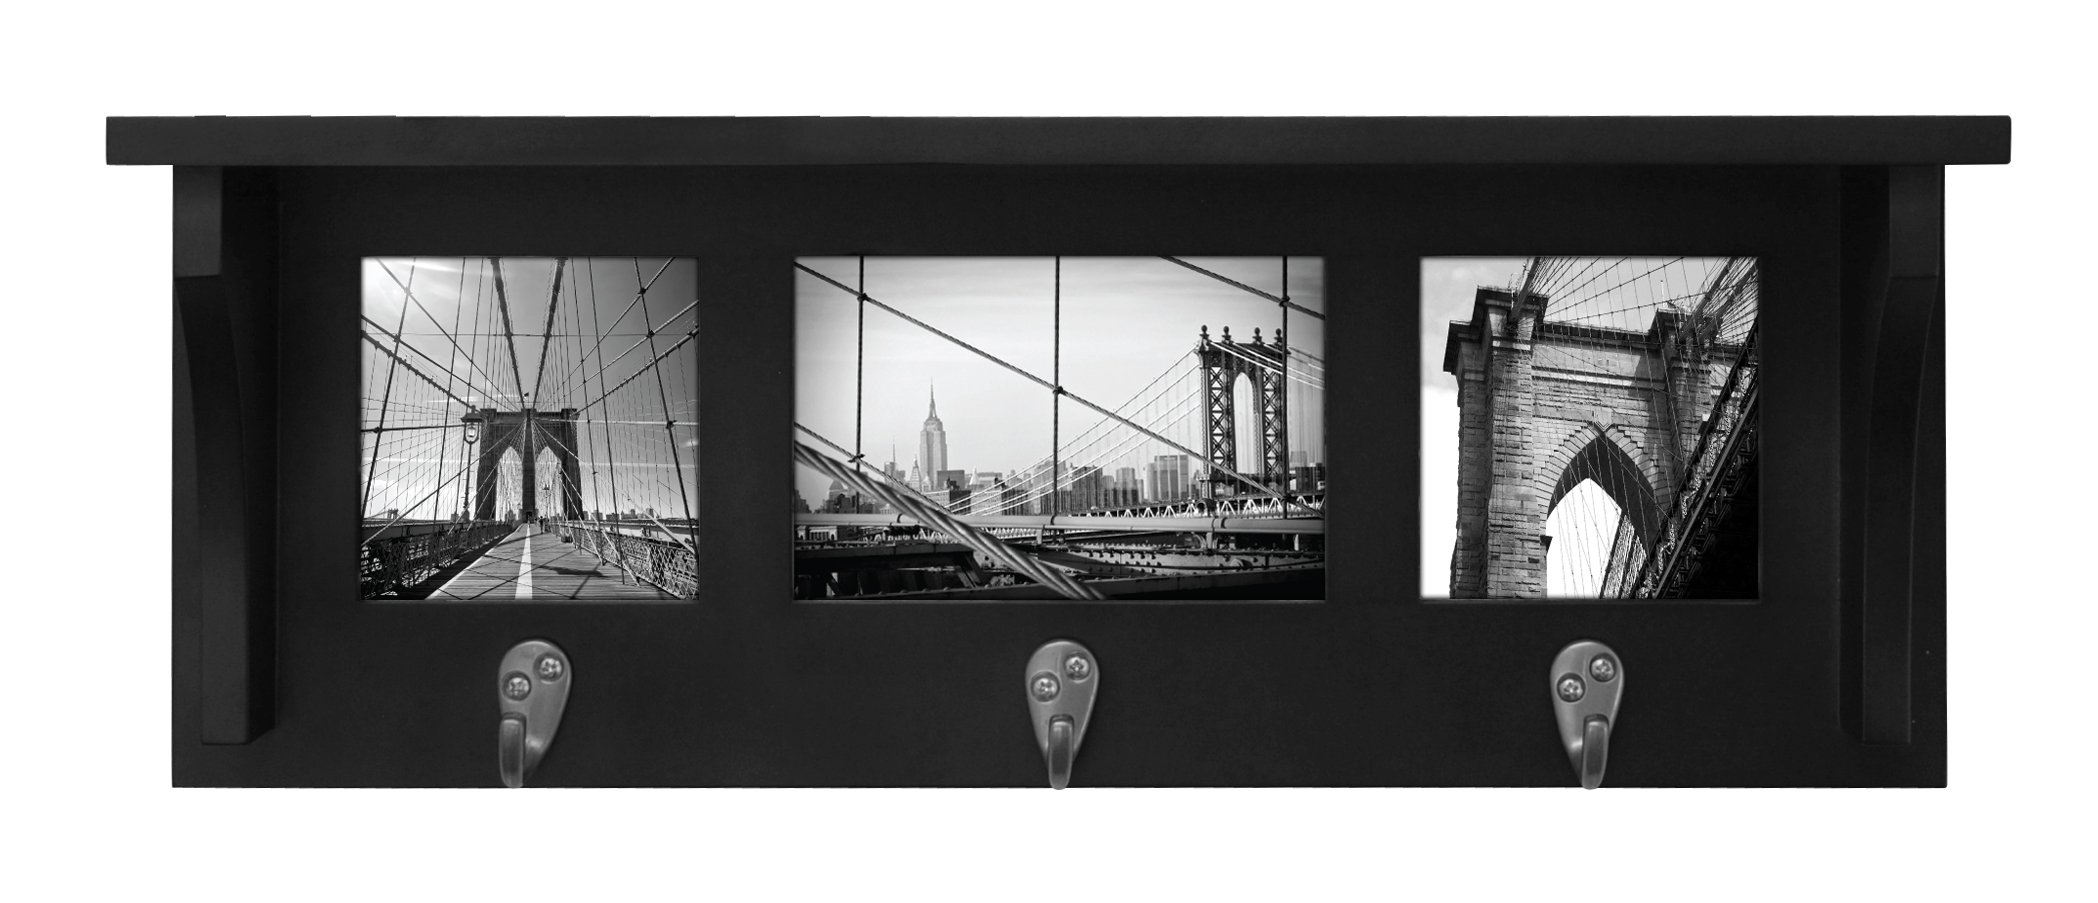 kieragrace Riley Wall Shelf and Picture Collage with 3 Hooks, 18.5-Inch by 7-Inch, Holds 2- 4 by 4-Inch and 1- 4 by 6-Inch Photo, Black by kieragrace